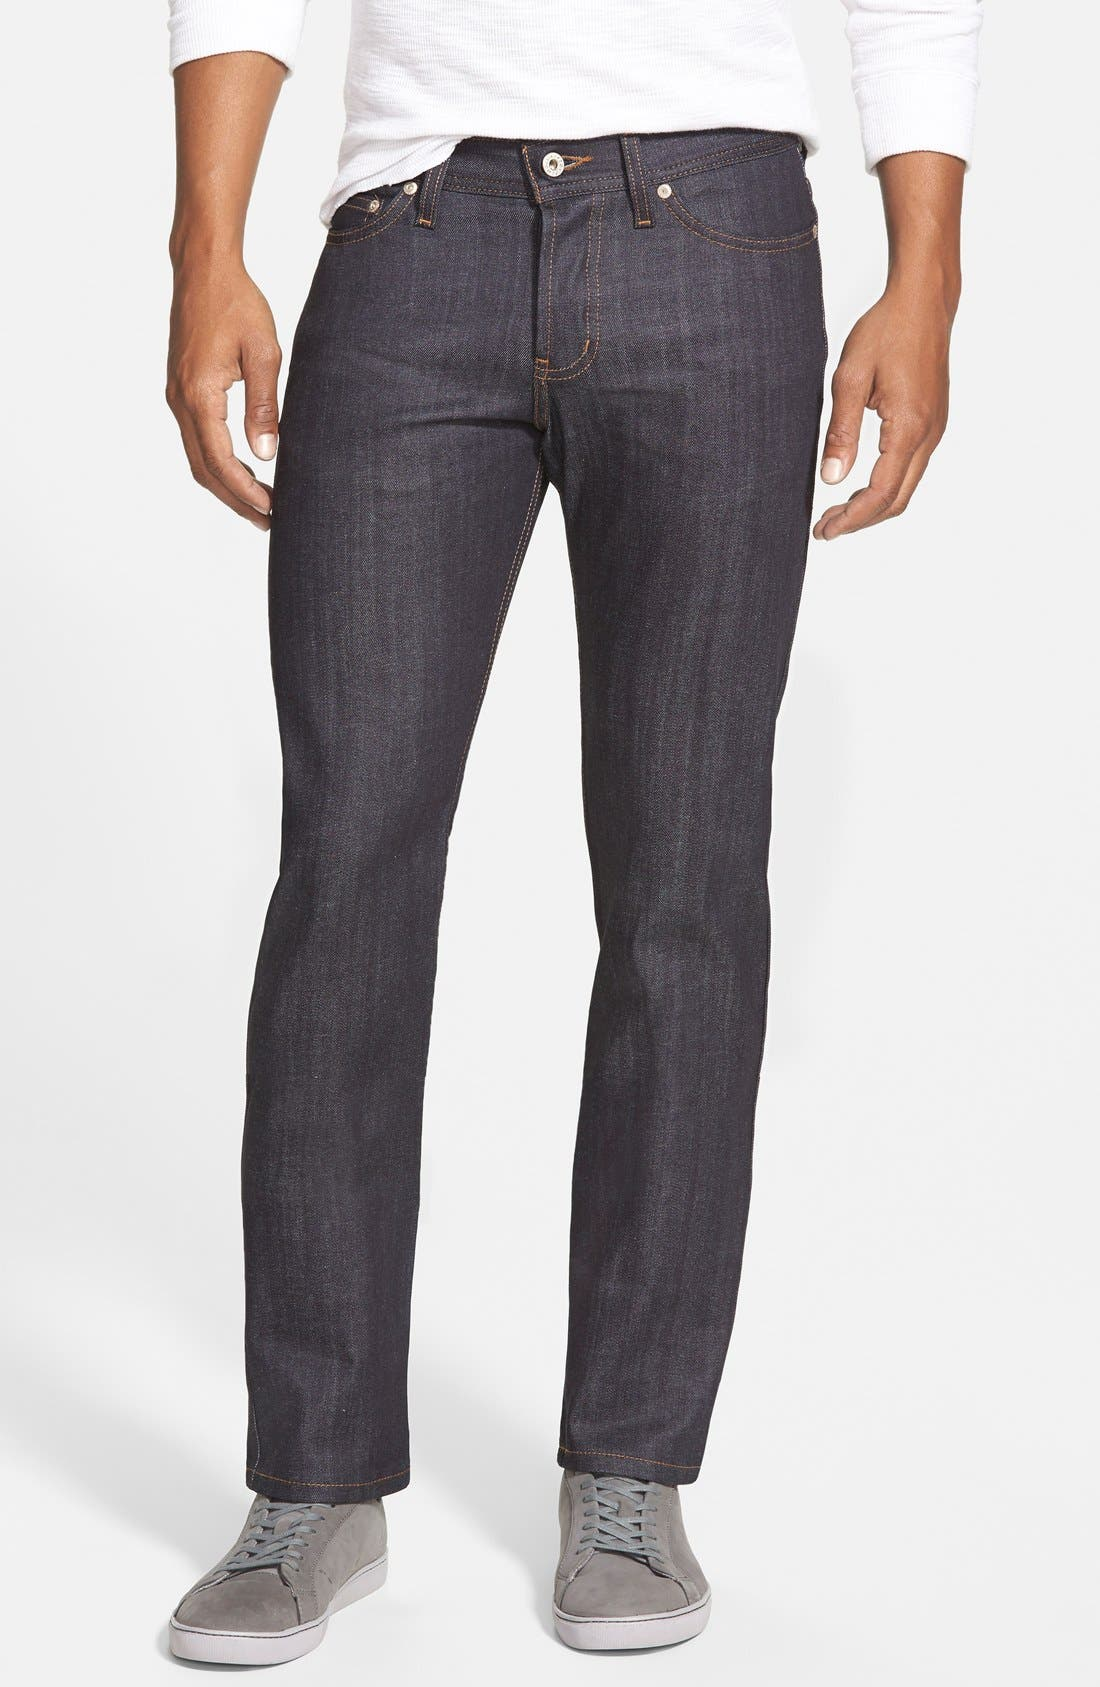 Naked & Famous Denim 'Weird Guy' Slim Fit Jeans (Indigo)